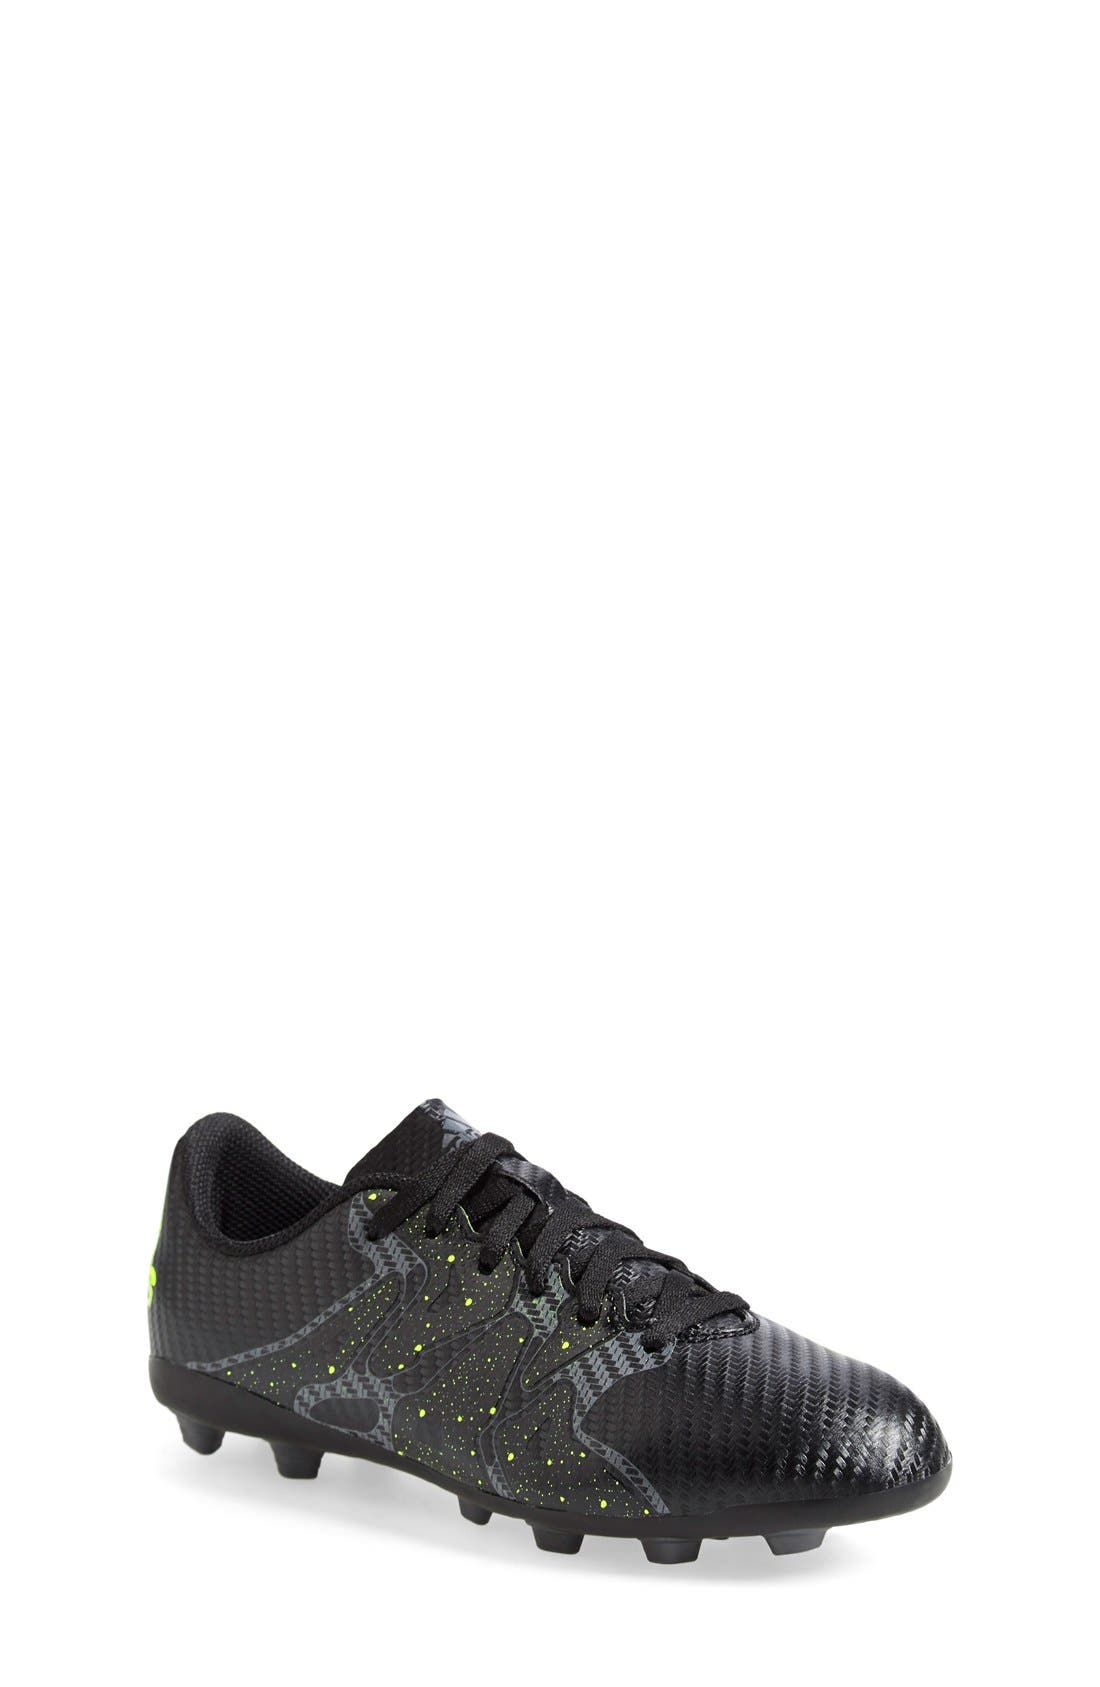 adidas 'Chaos' Soccer Cleat (Toddler